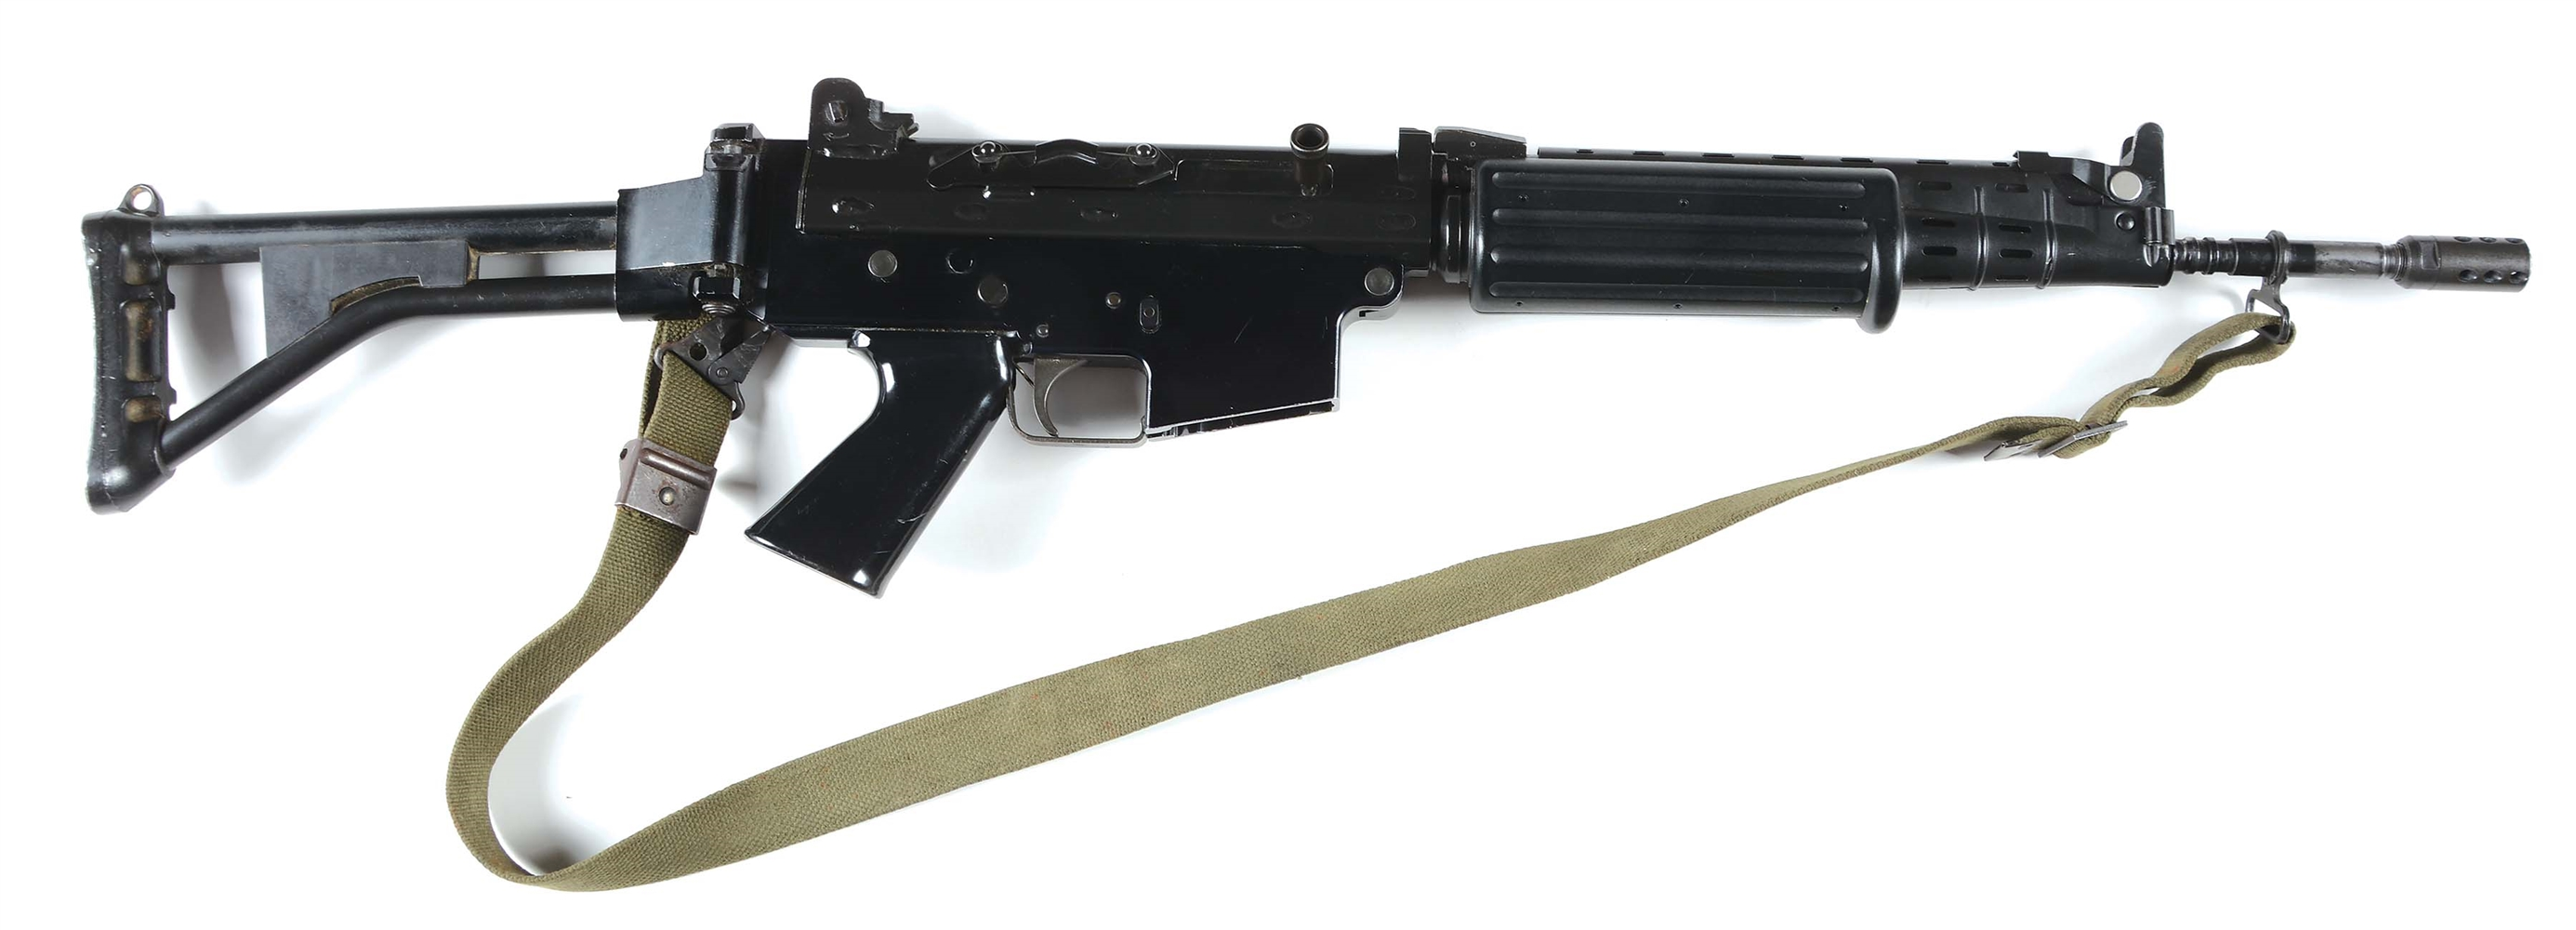 (M) Fabrique Nationale FNC Semi-Automatic Carbine.